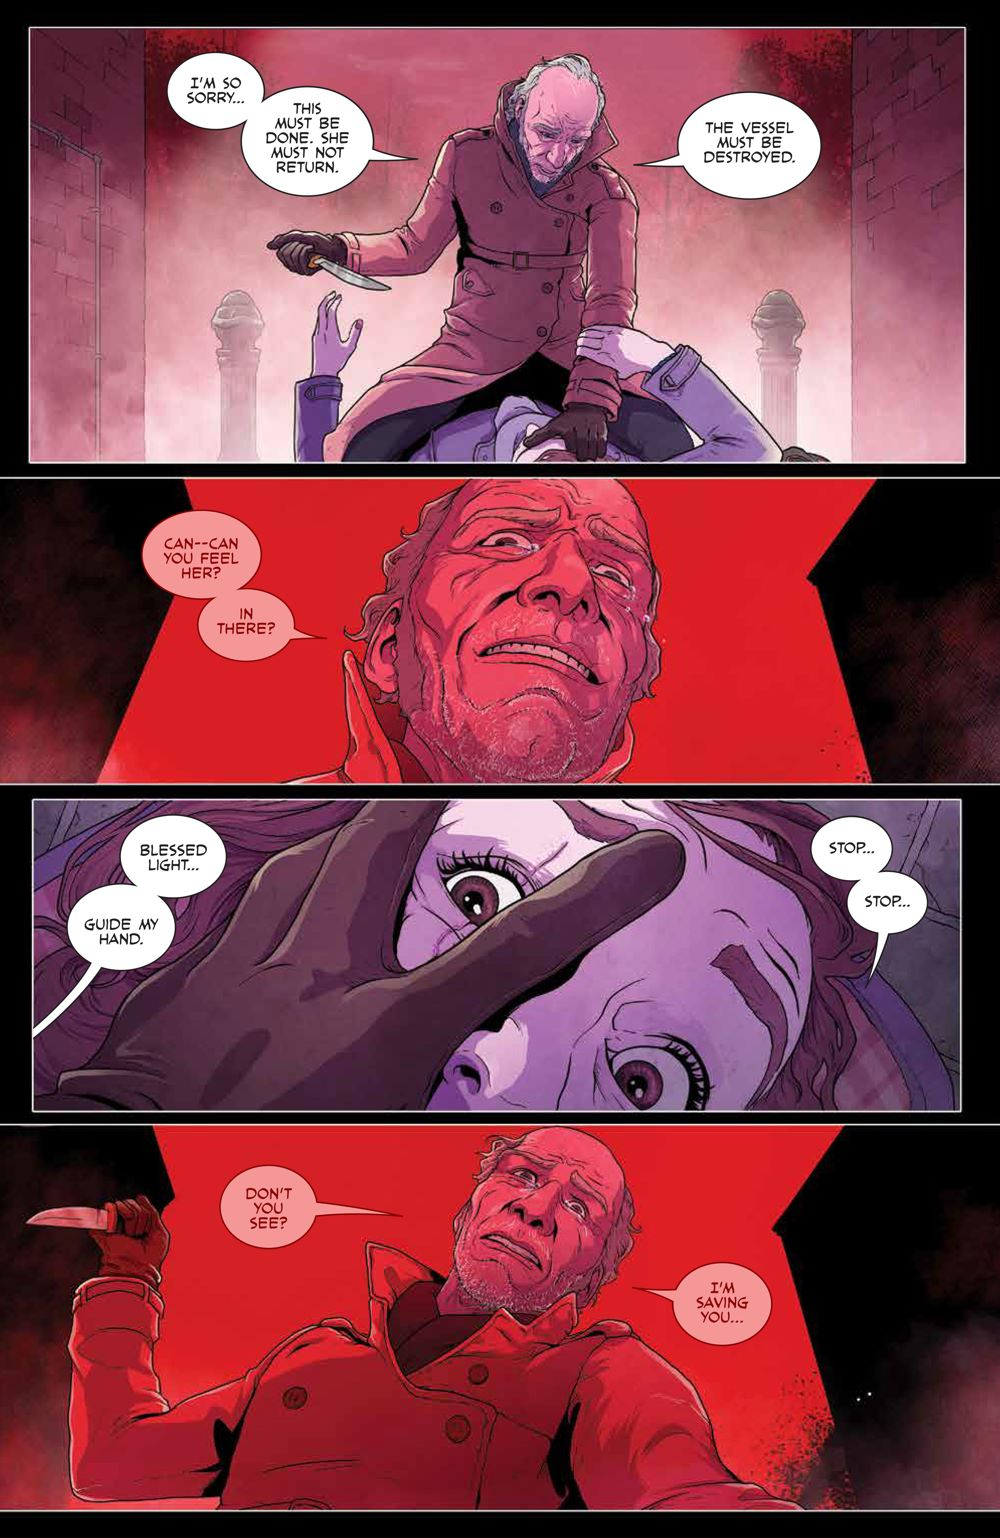 RedMother_010_PRESS_6 ComicList Previews: THE RED MOTHER #10